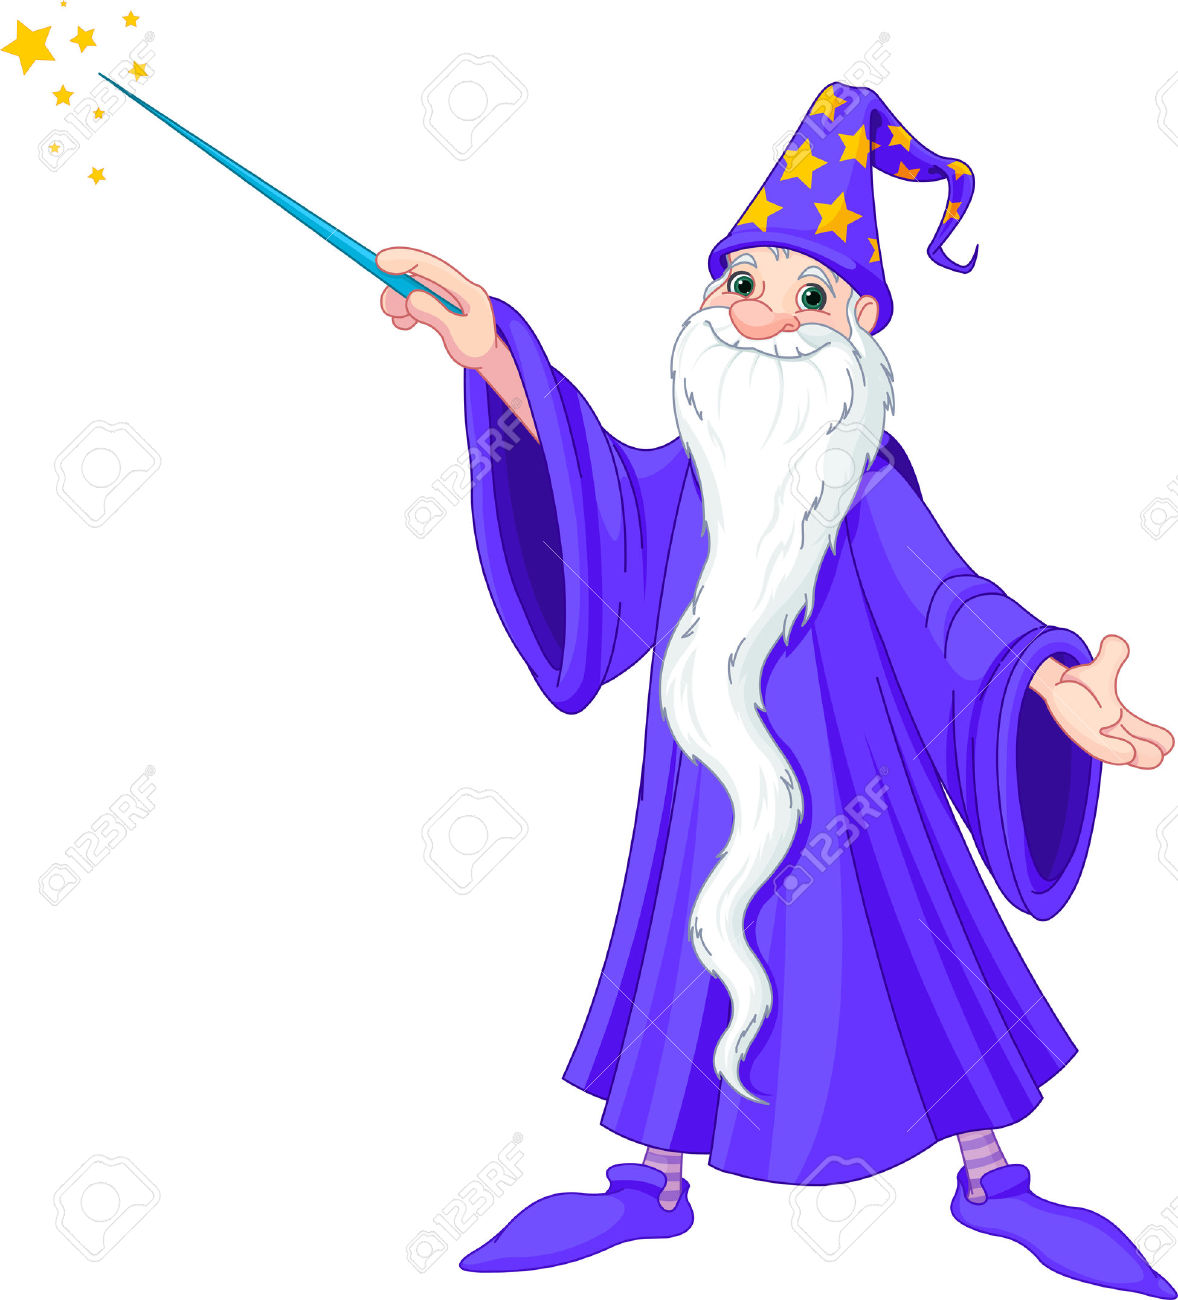 Wizard clipart 7 » Clipart Station.